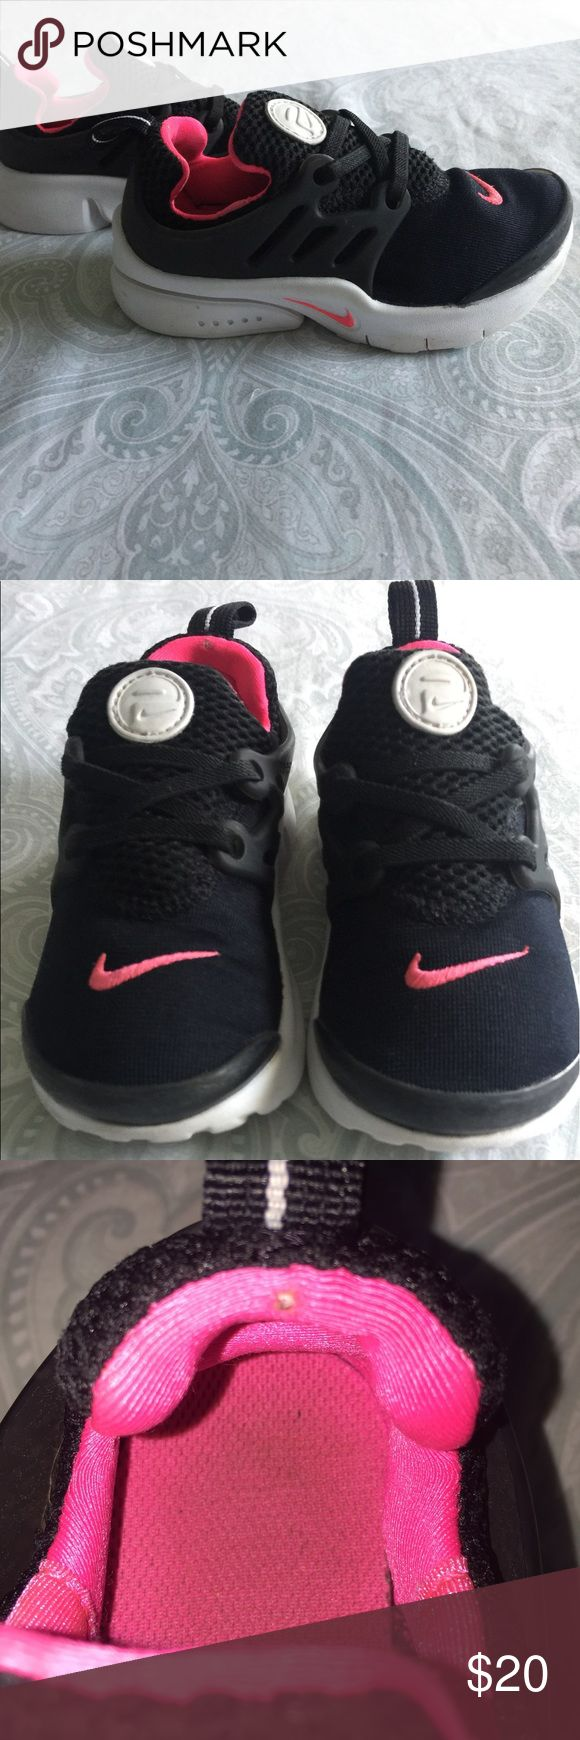 Nike presto sneakers EUC Small tear on back of inside of shoe Nike Shoes Sneakers